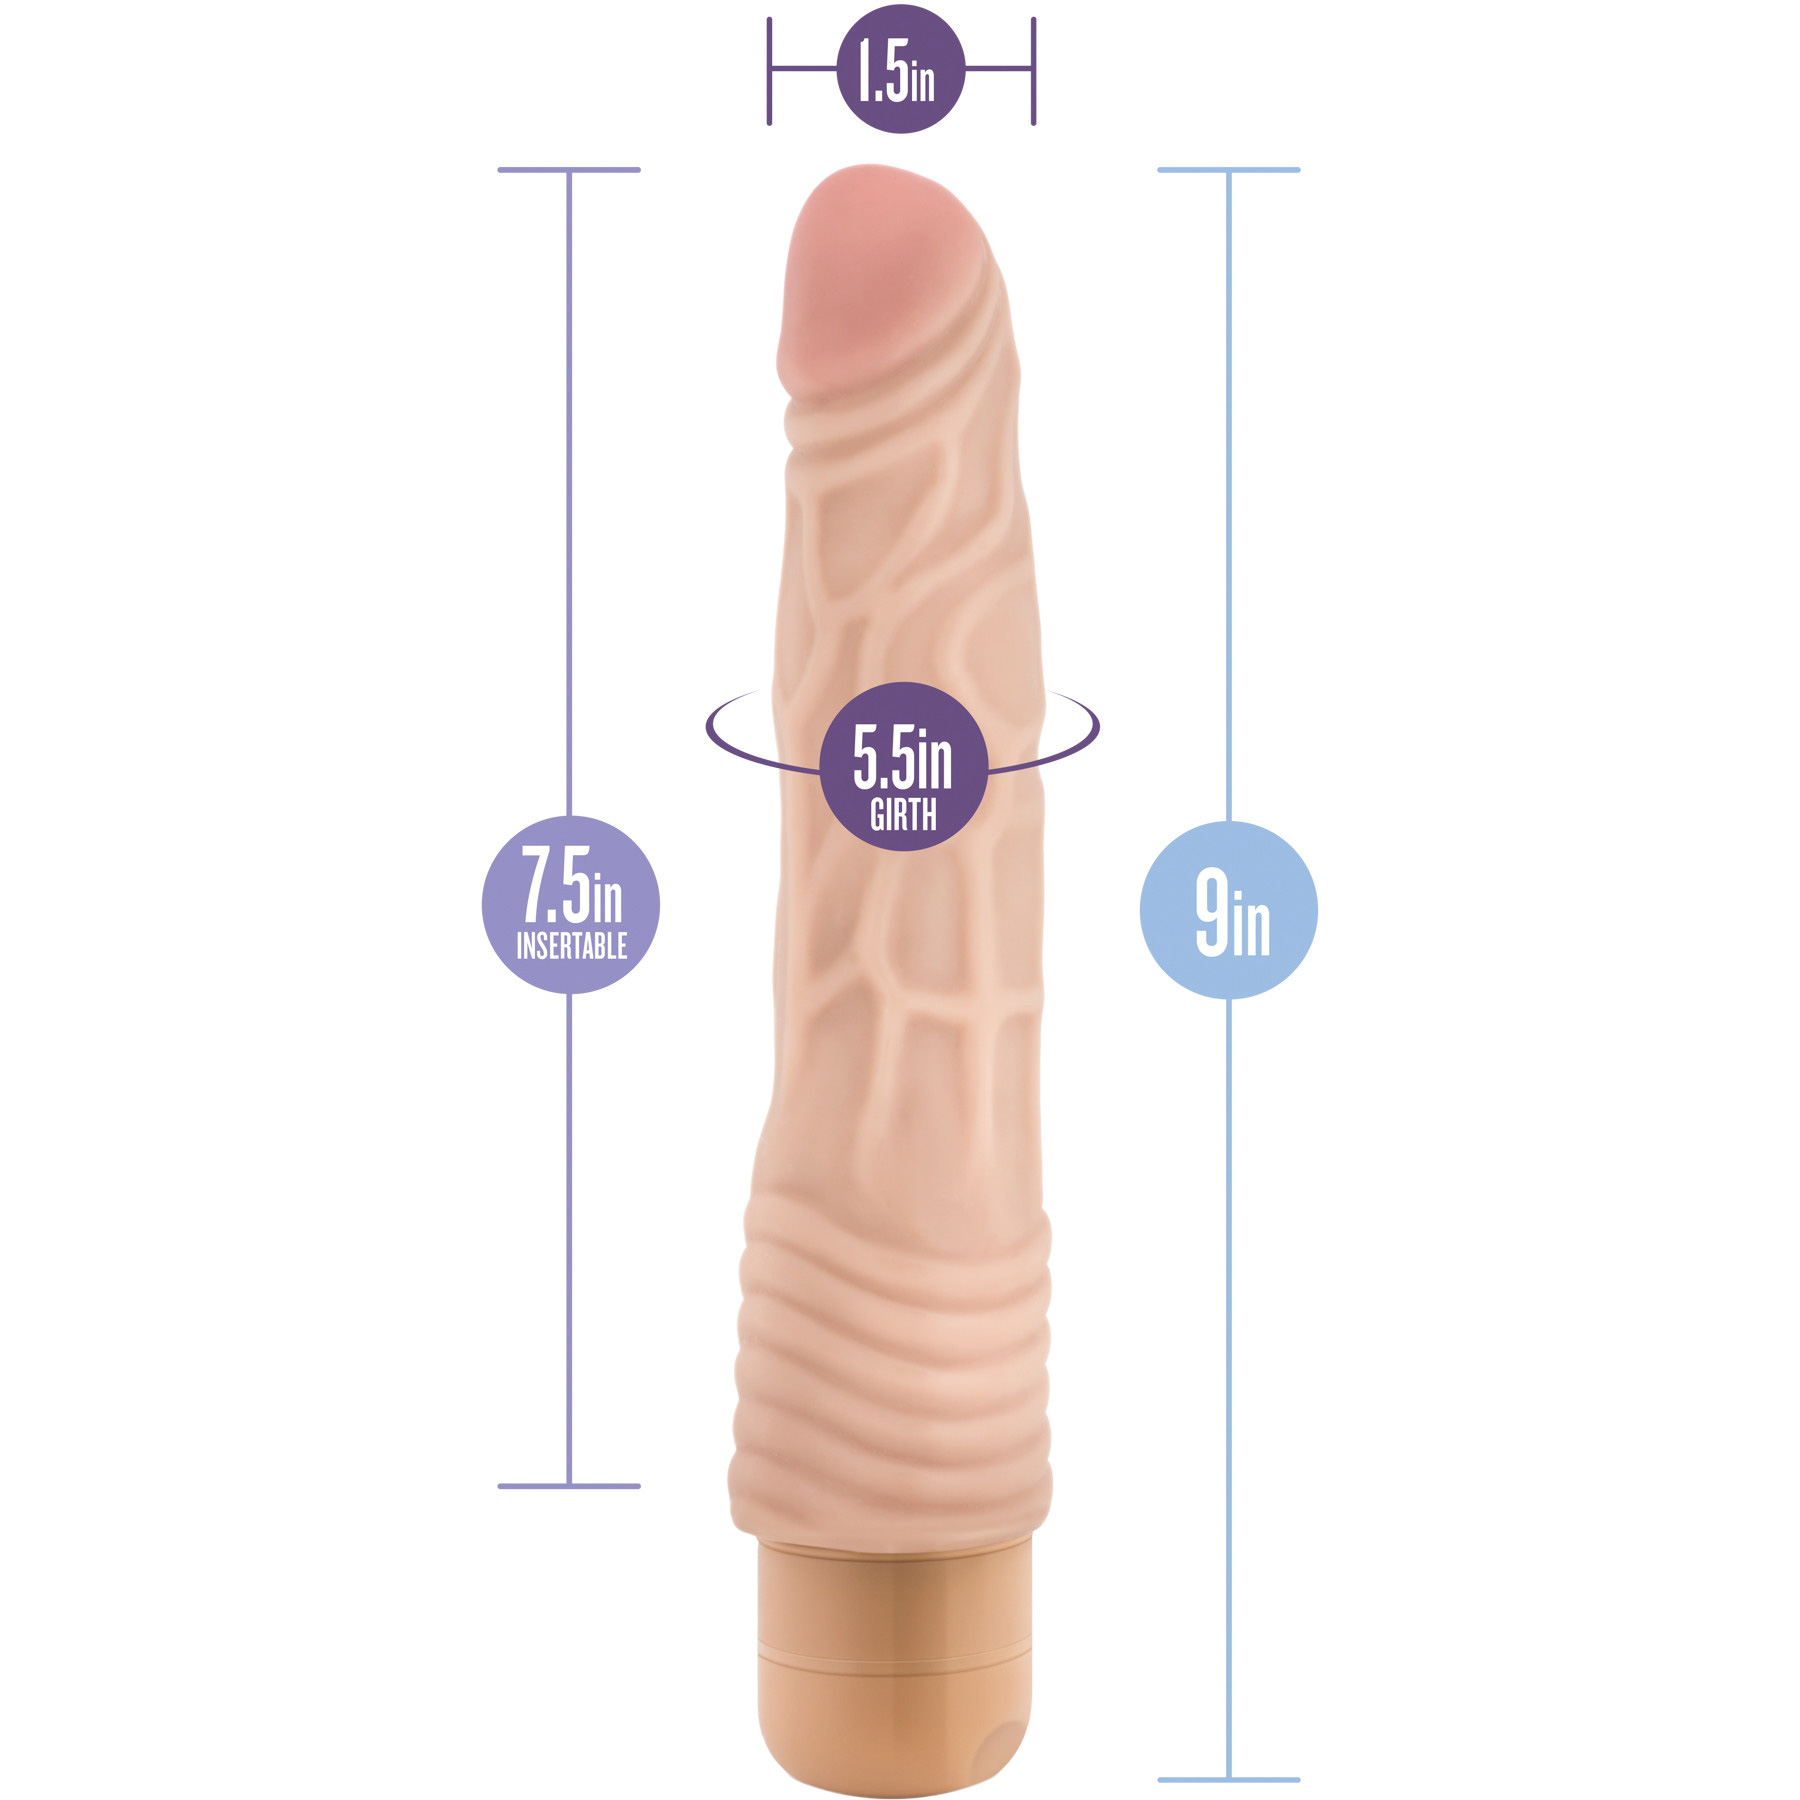 Dr. Skin Cock Vibe 2 - 9 Inch Vibrating Realistic Cock - Measurements